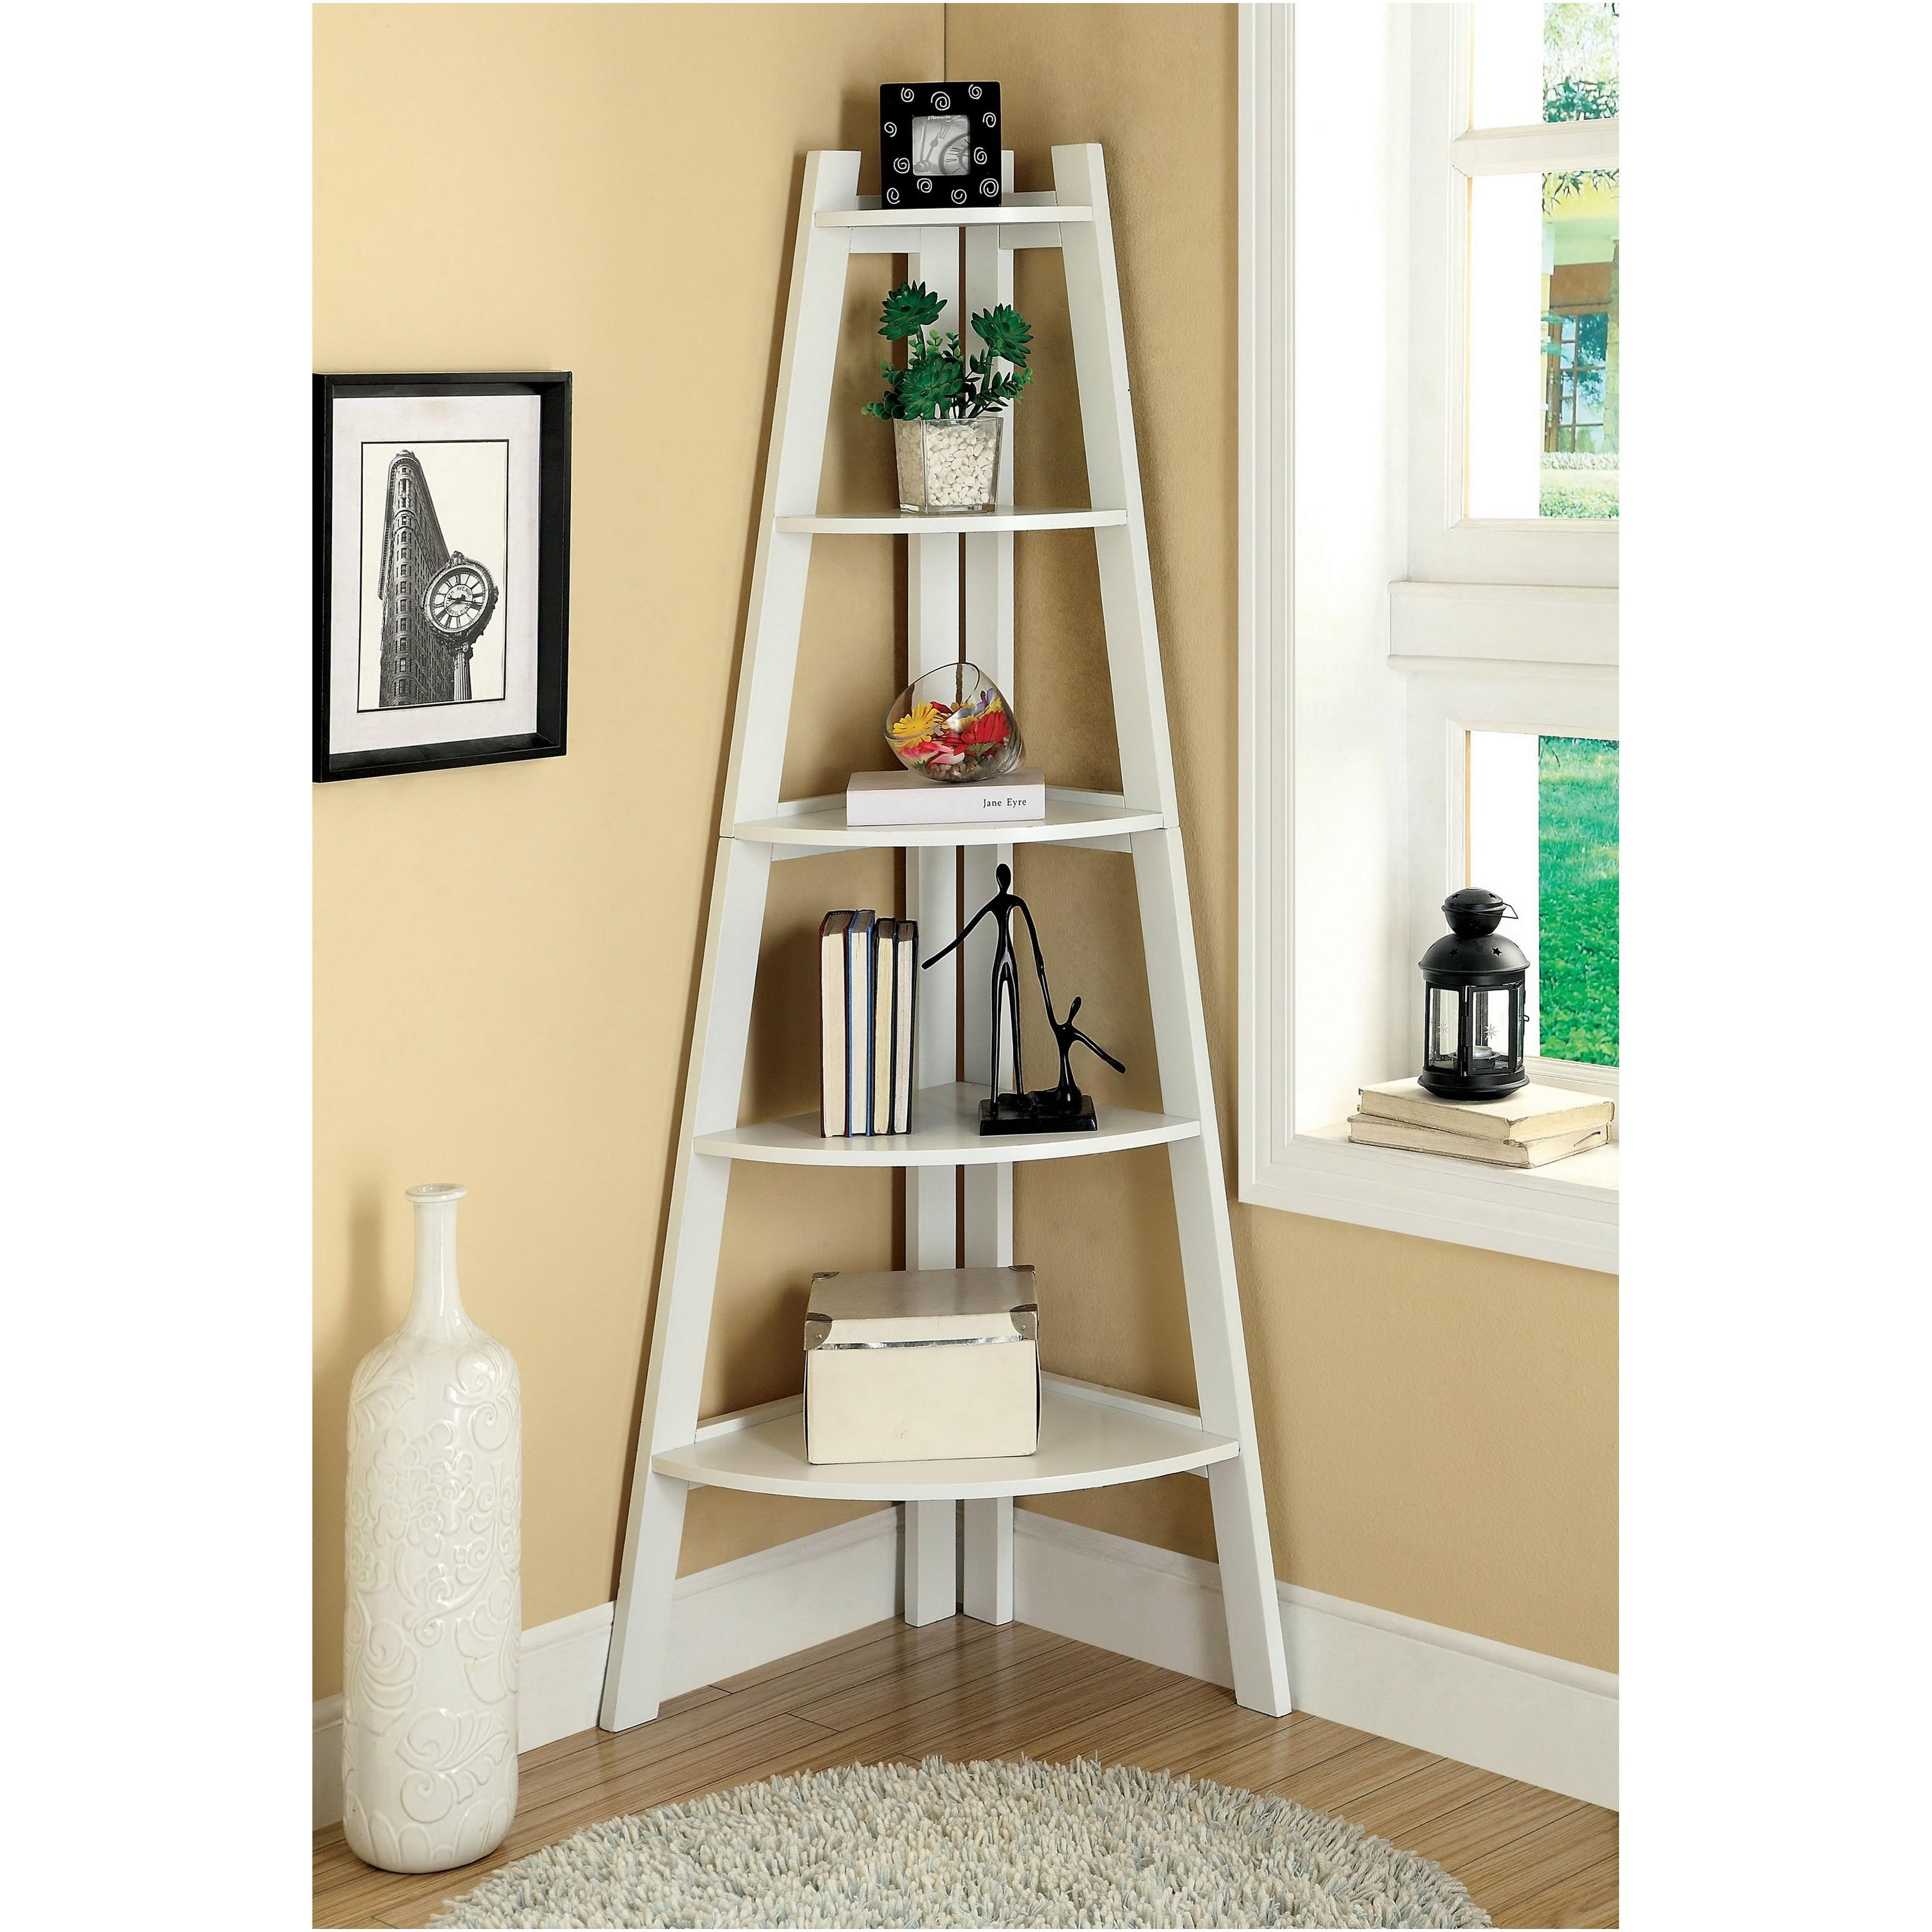 Standing Corner Shelf Ideas Best